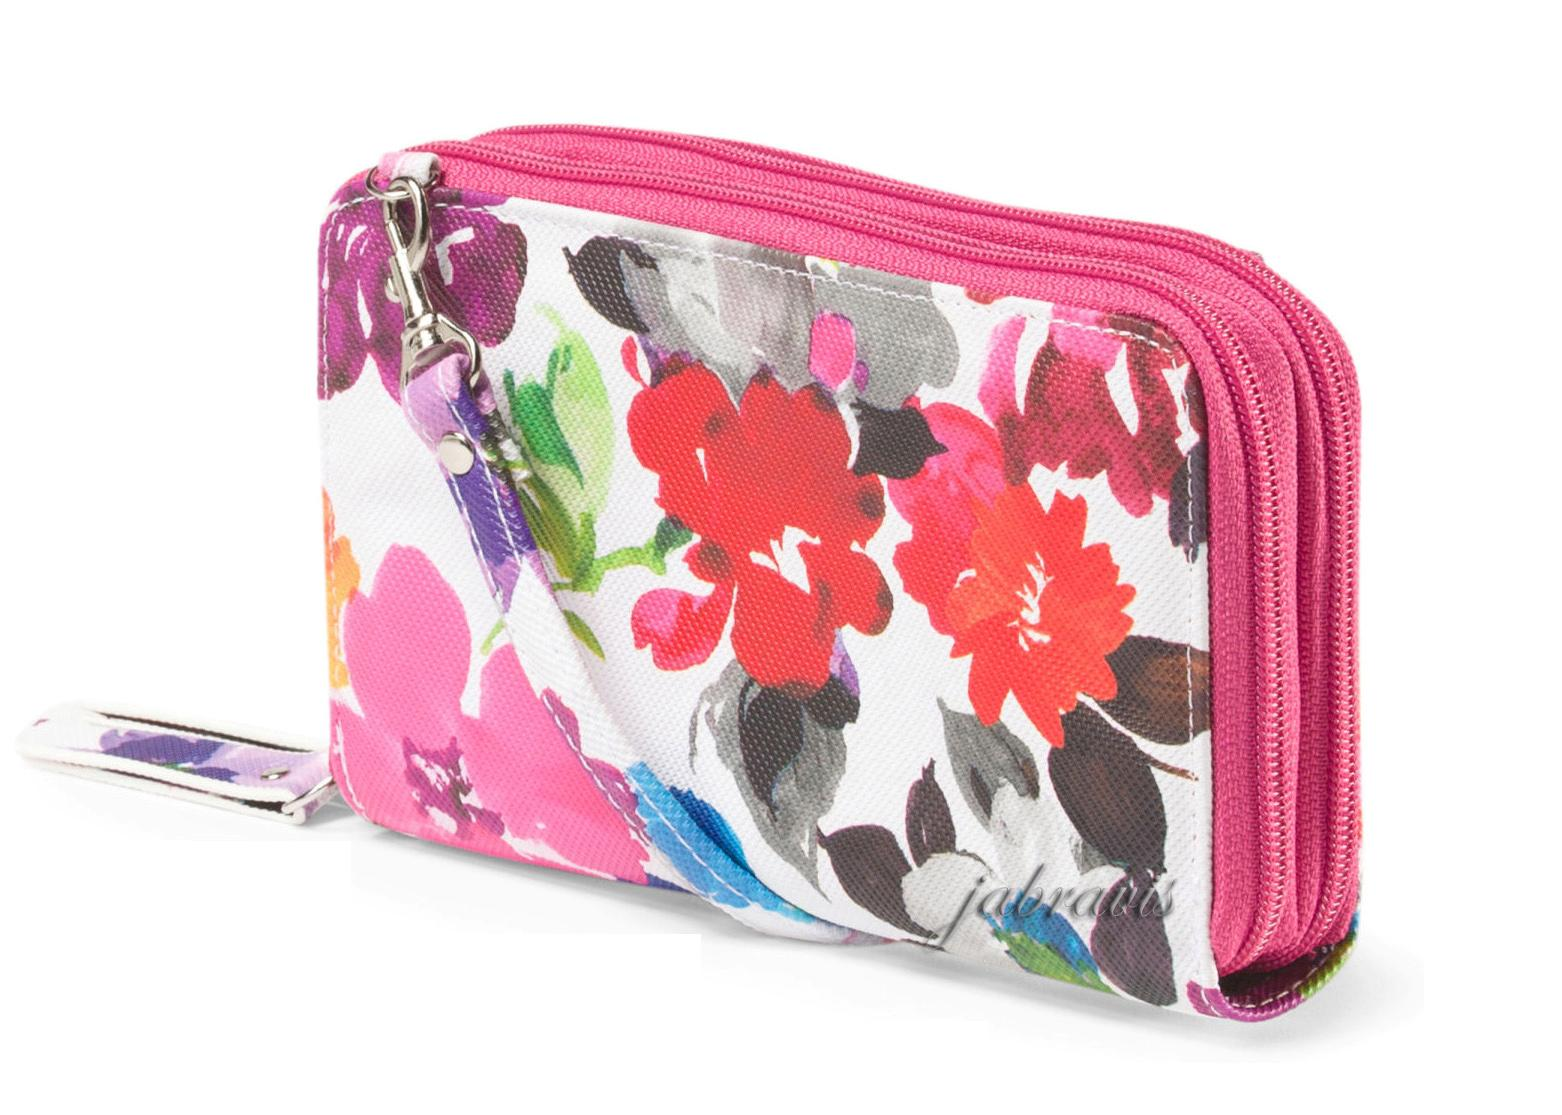 Buxton Pink Floral Print Double Zip Organizer Clutch